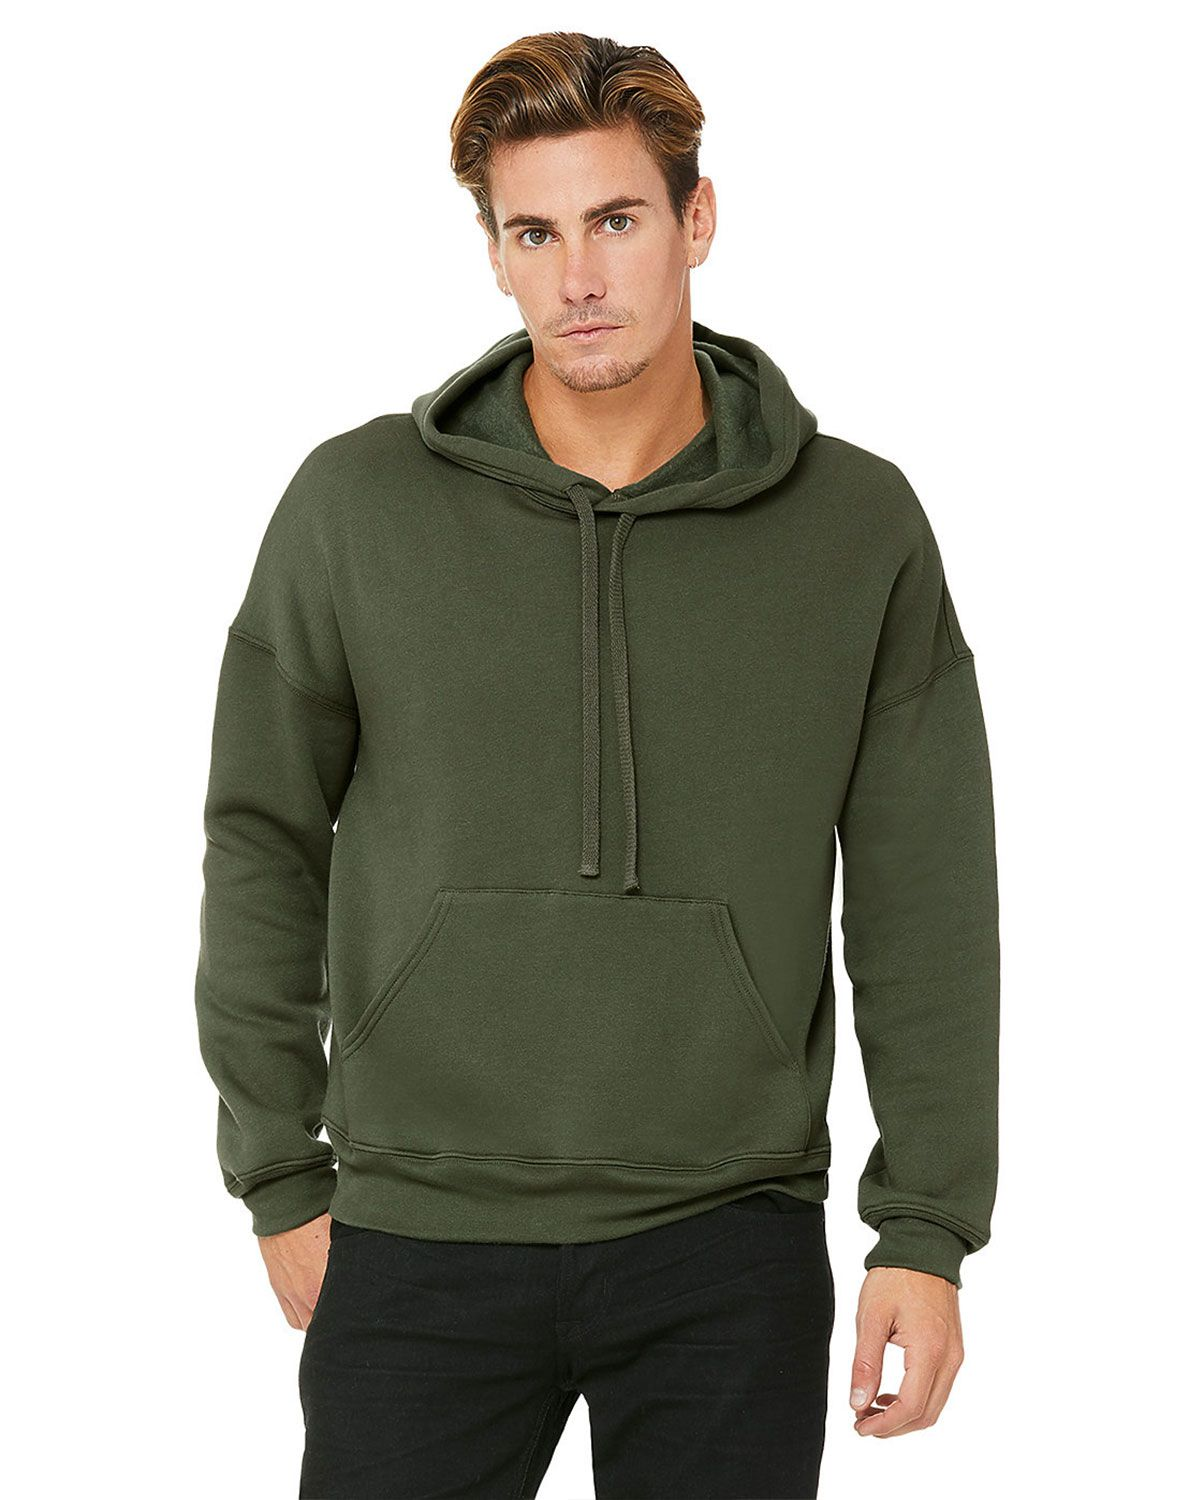 Bella + Canvas 3729 Unisex Pullover Hoodie - Military Green - XL 3729